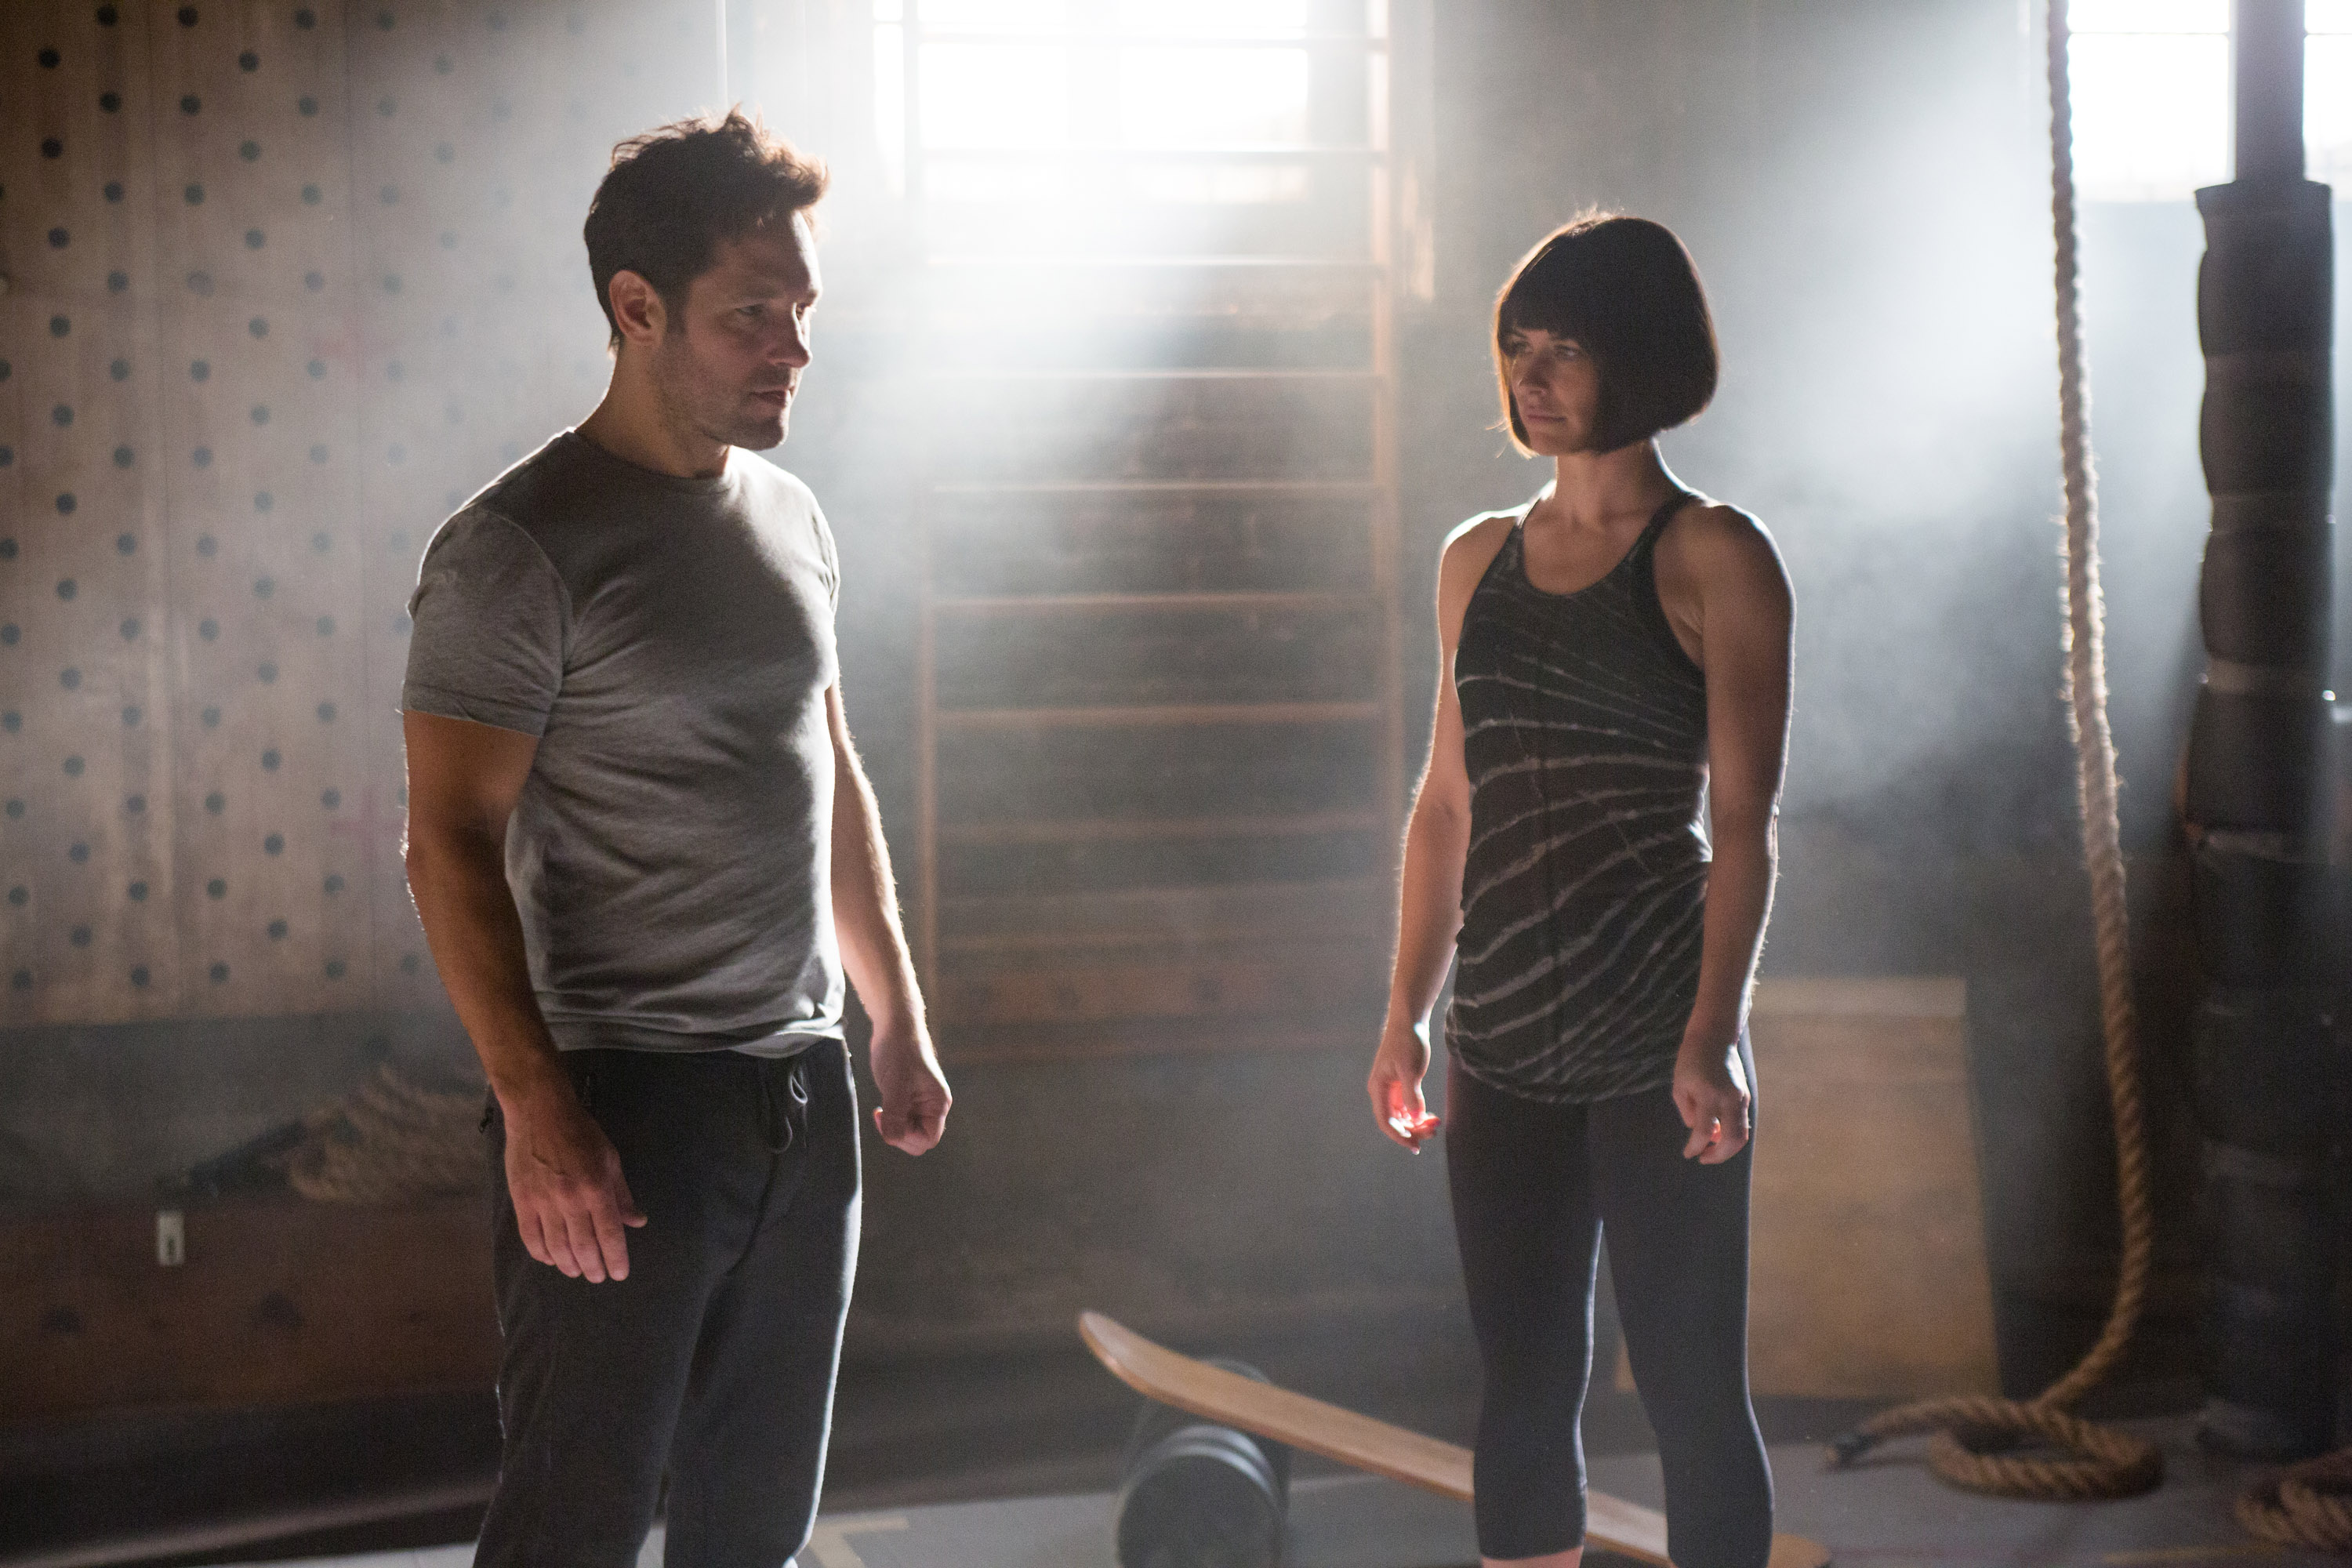 Marvel's Ant-Man L to R: Ant-Man/Scott Lang (Paul Rudd) and Hope van Dyne (Evangeline Lilly) Photo Credit: Zade Rosenthal © Marvel 2015